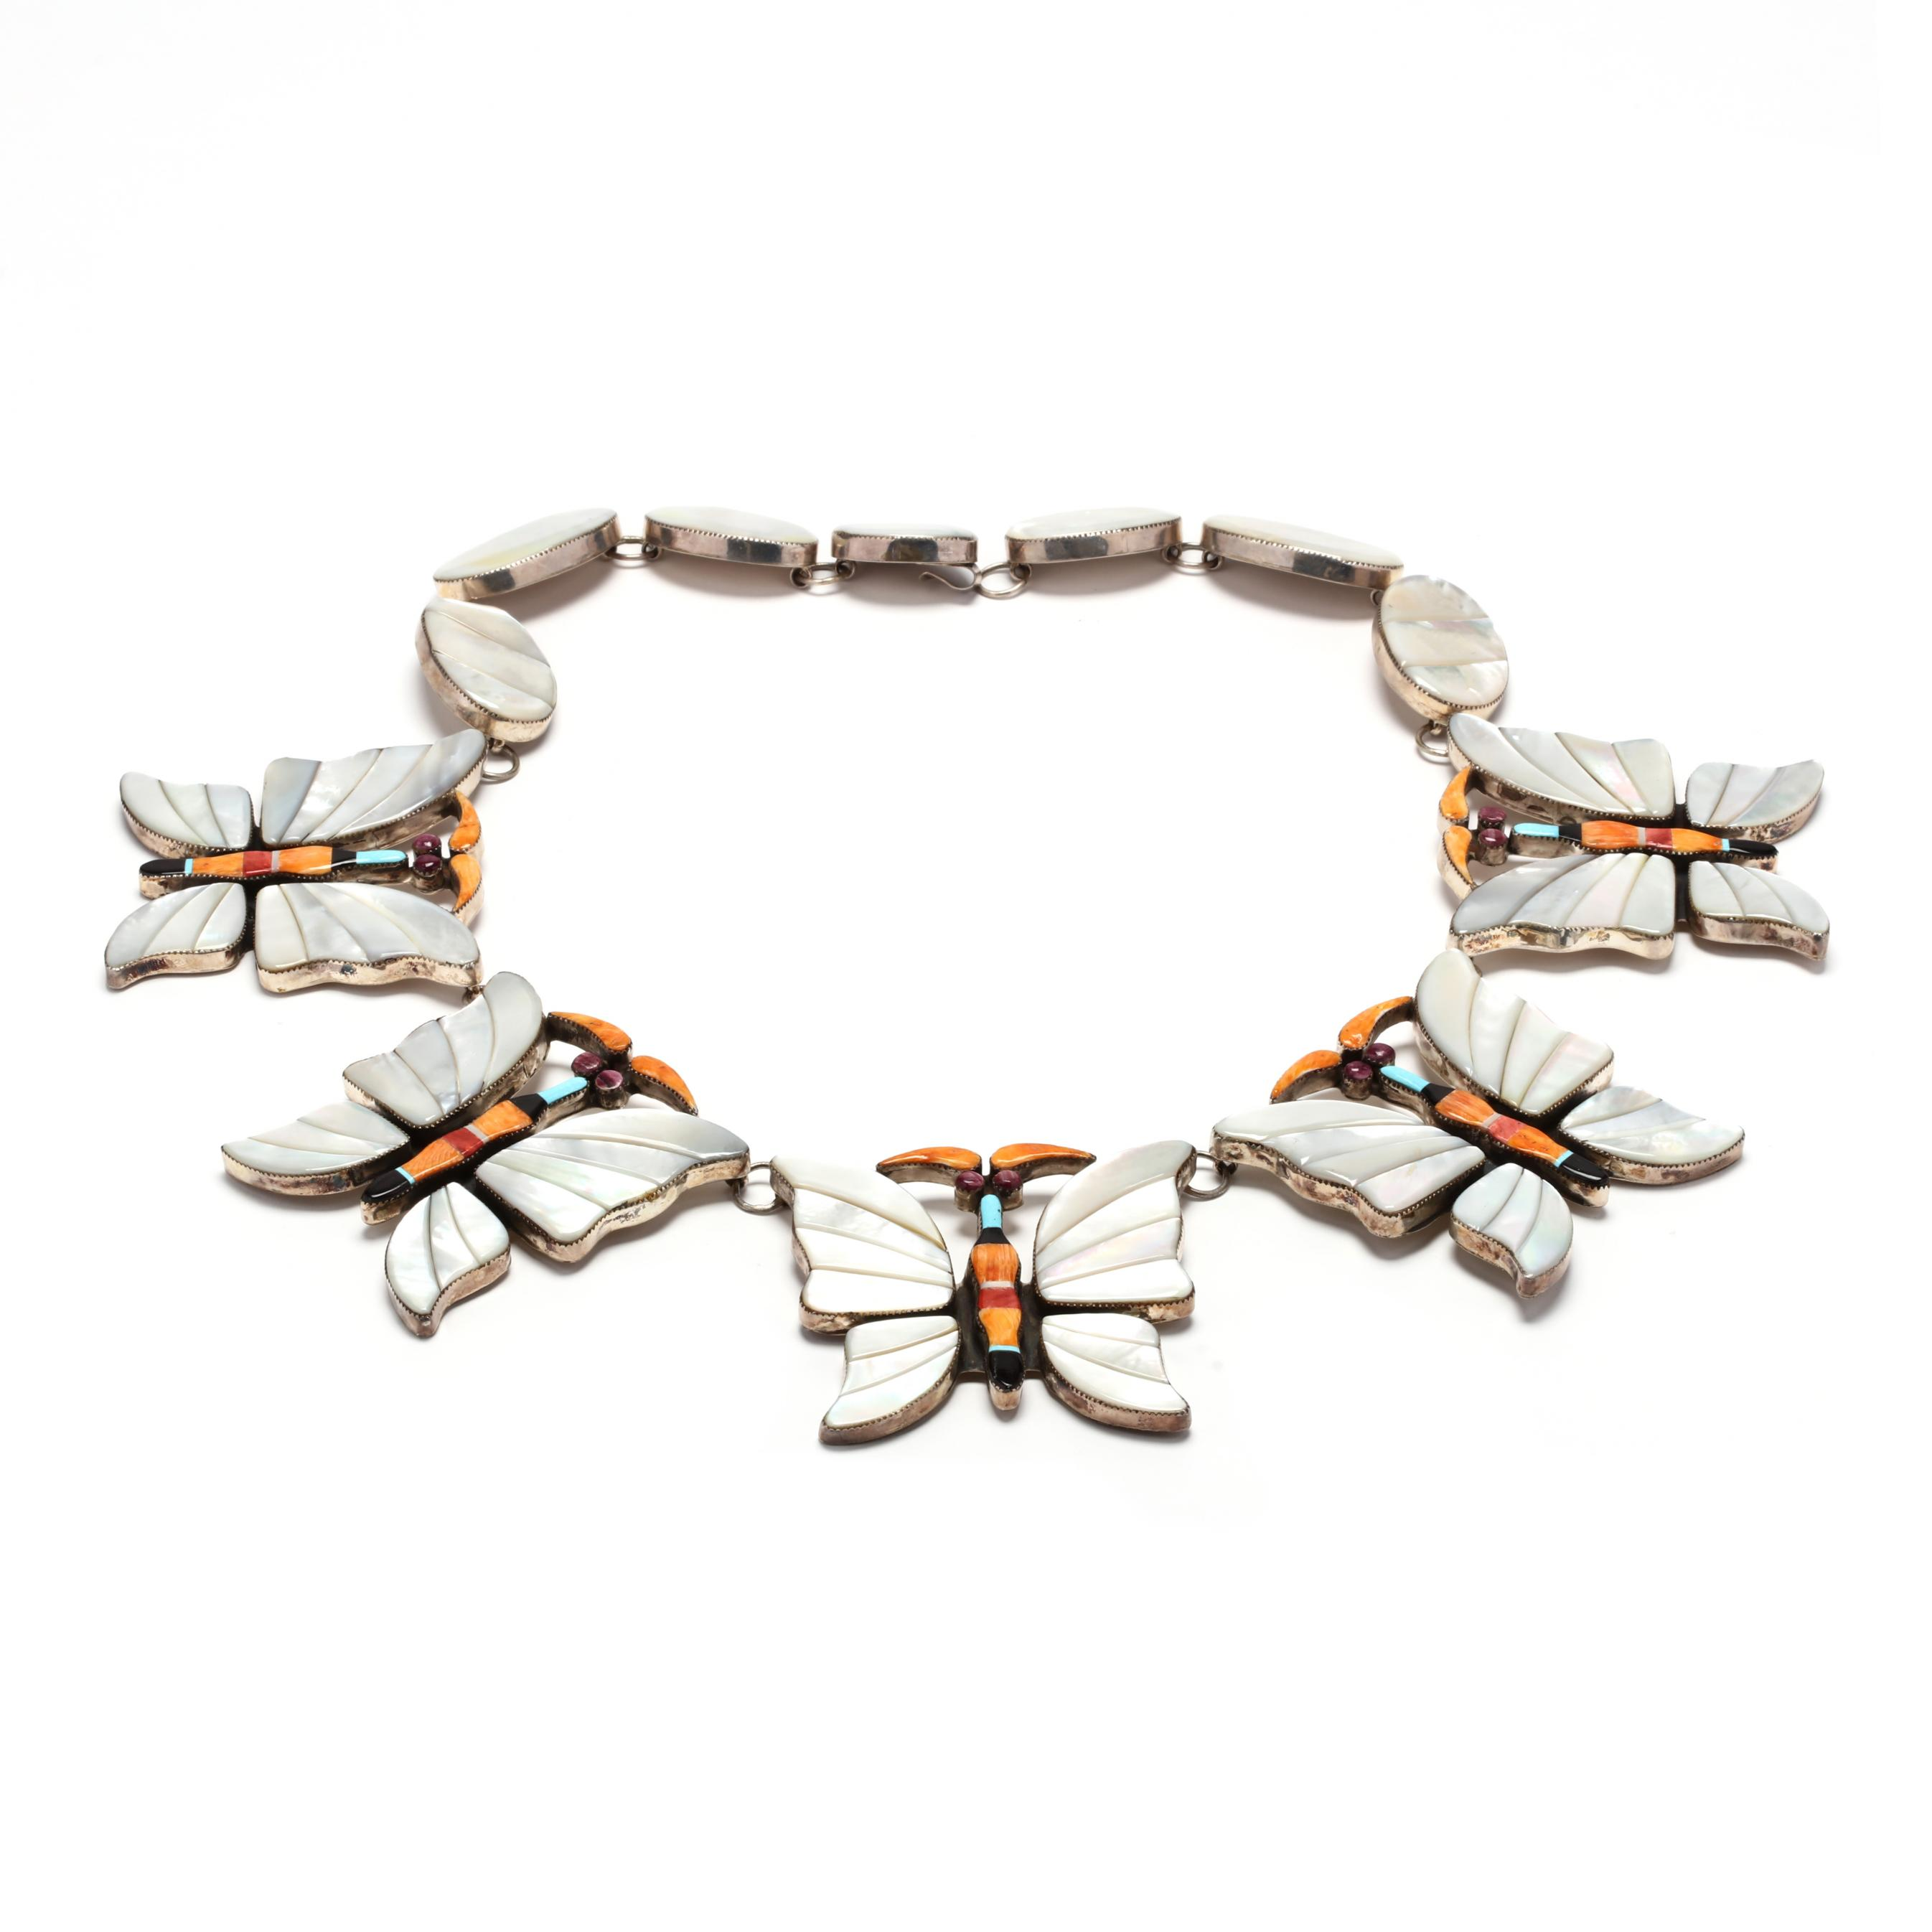 southwestern-sterling-silver-and-inlaid-butterfly-motif-necklace-signed